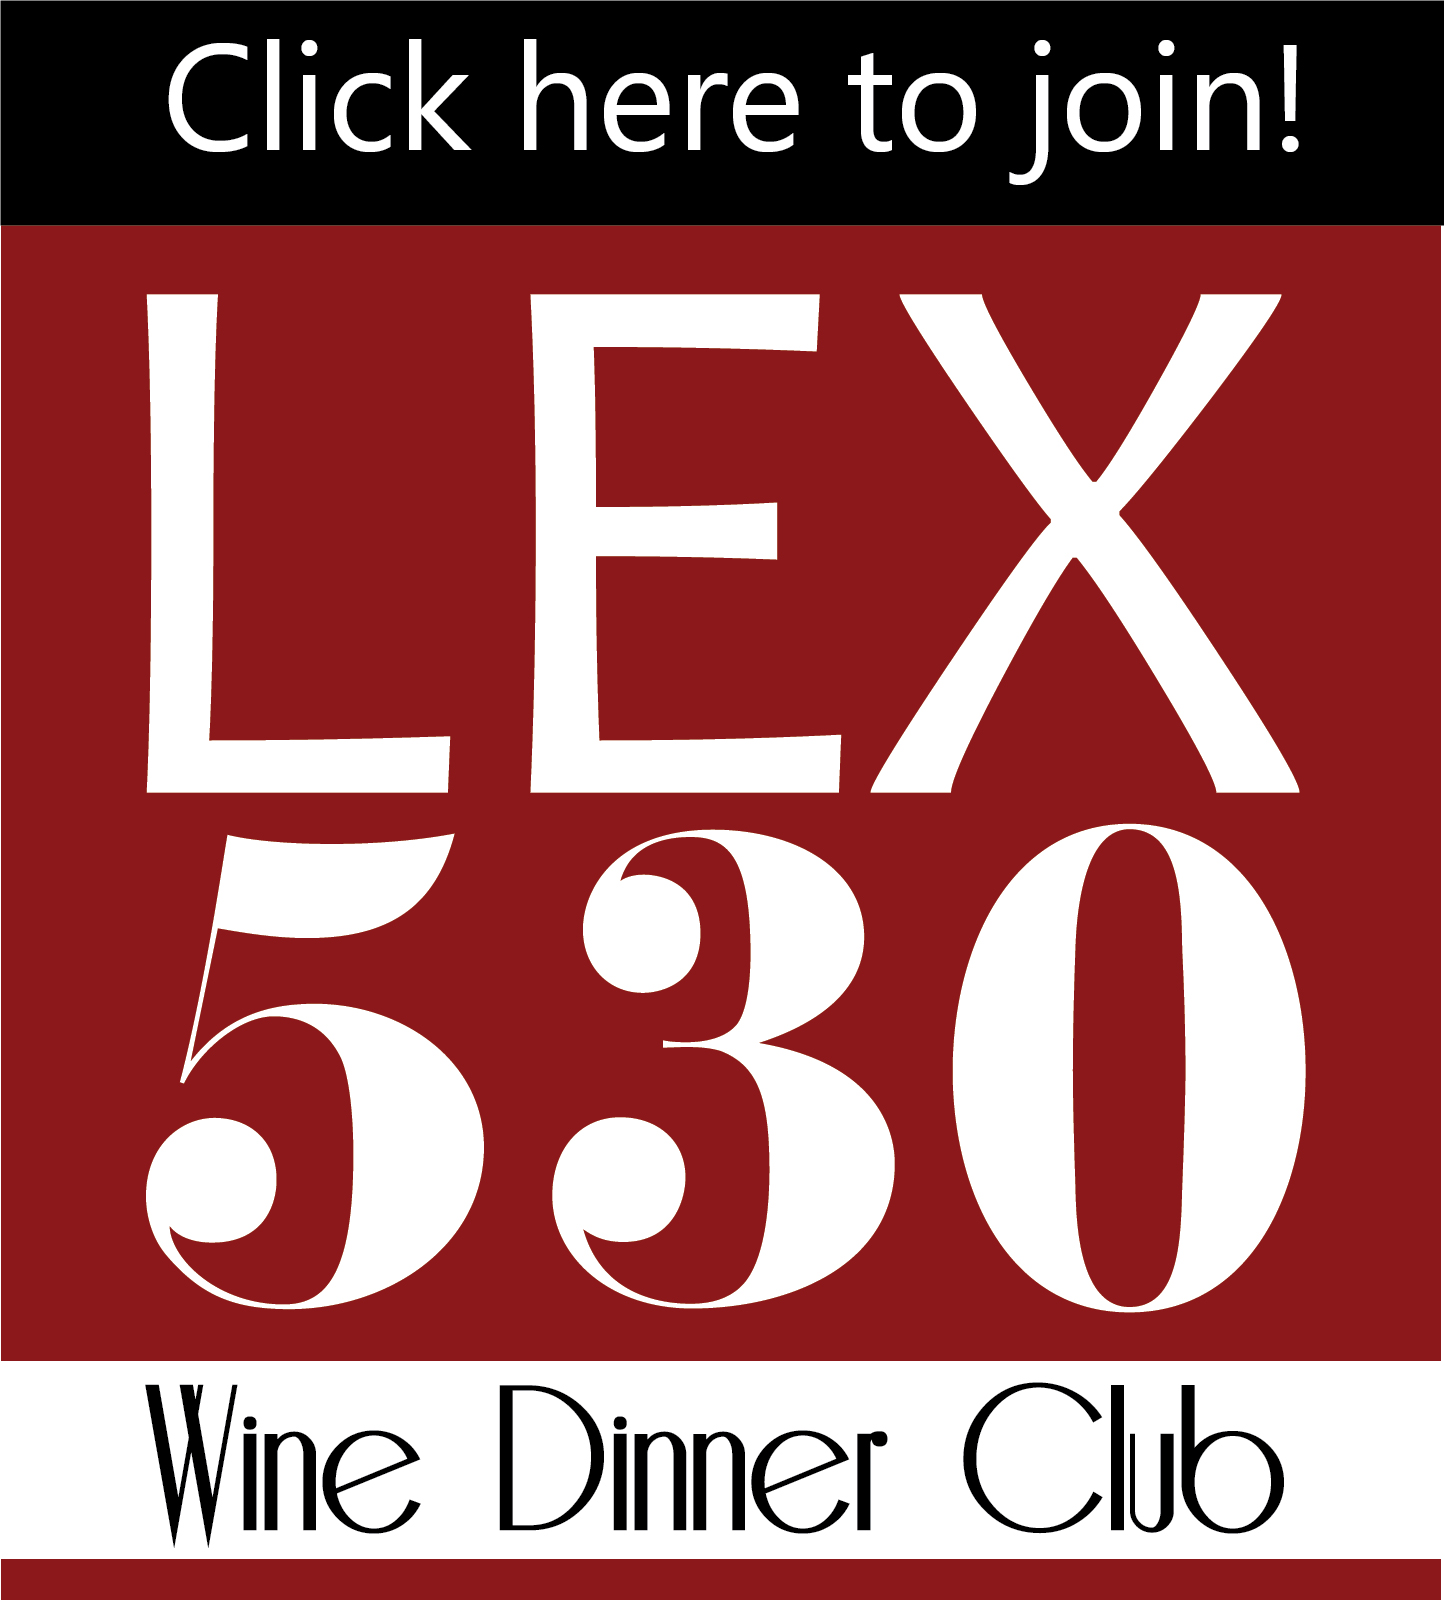 Upcoming Wine Dinners - May 29, 2019Spring Wine DinnerStarting at 6 p.m.$100 per personOur third LEX 530 Wine and Dinner Club event will be held on Wednesday, May 29, 2019. Our next LEX 530 Wine Dinner will be held on May 29, 2019. This Spring Wine Dinner will feature Glenwood Cellars and Tiedemann wines made by vintner Carl Tiedemann to pair with Executive Chef Chad Coryn's delectable five-course dinner. There is limited seating for this exclusive dinner, so reserve your spot now. Download the full menu with wine pairings here.Buy tickets here!